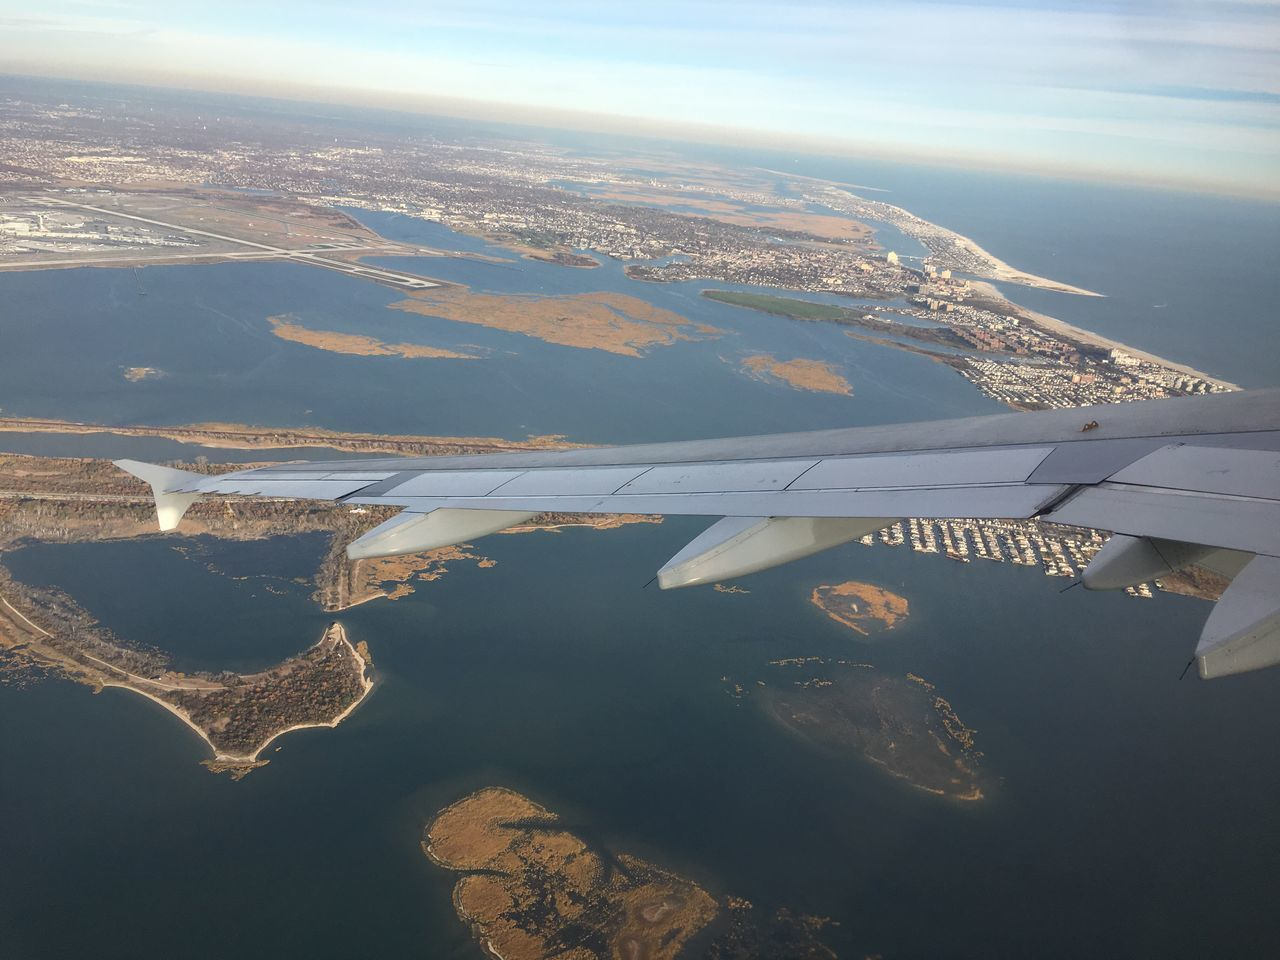 JFK Airport Water Aerial View Built Structure Nature Transportation Mode Of Transport No People Sky Landscape Day Scenics Architecture Beauty In Nature Airplane Outdoors Sea Cityscape Air Vehicle Airplane Wing Jamaica Bay